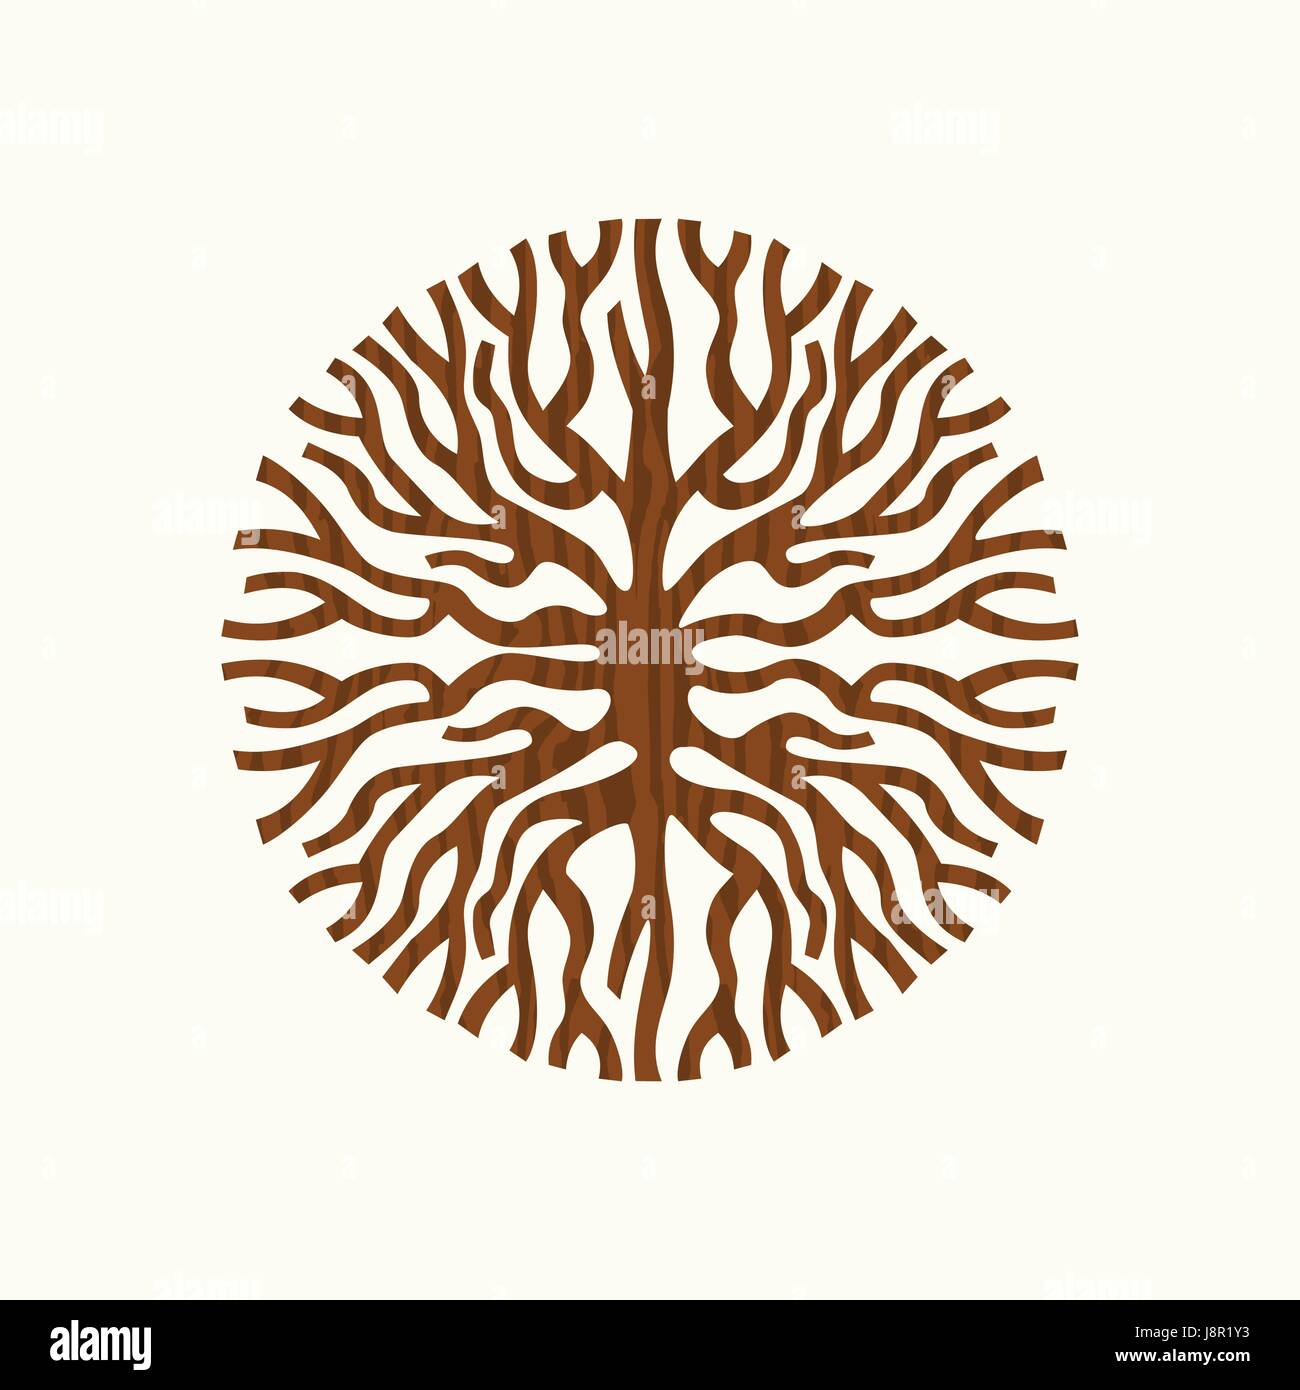 abstract circle shape of tree roots or branches